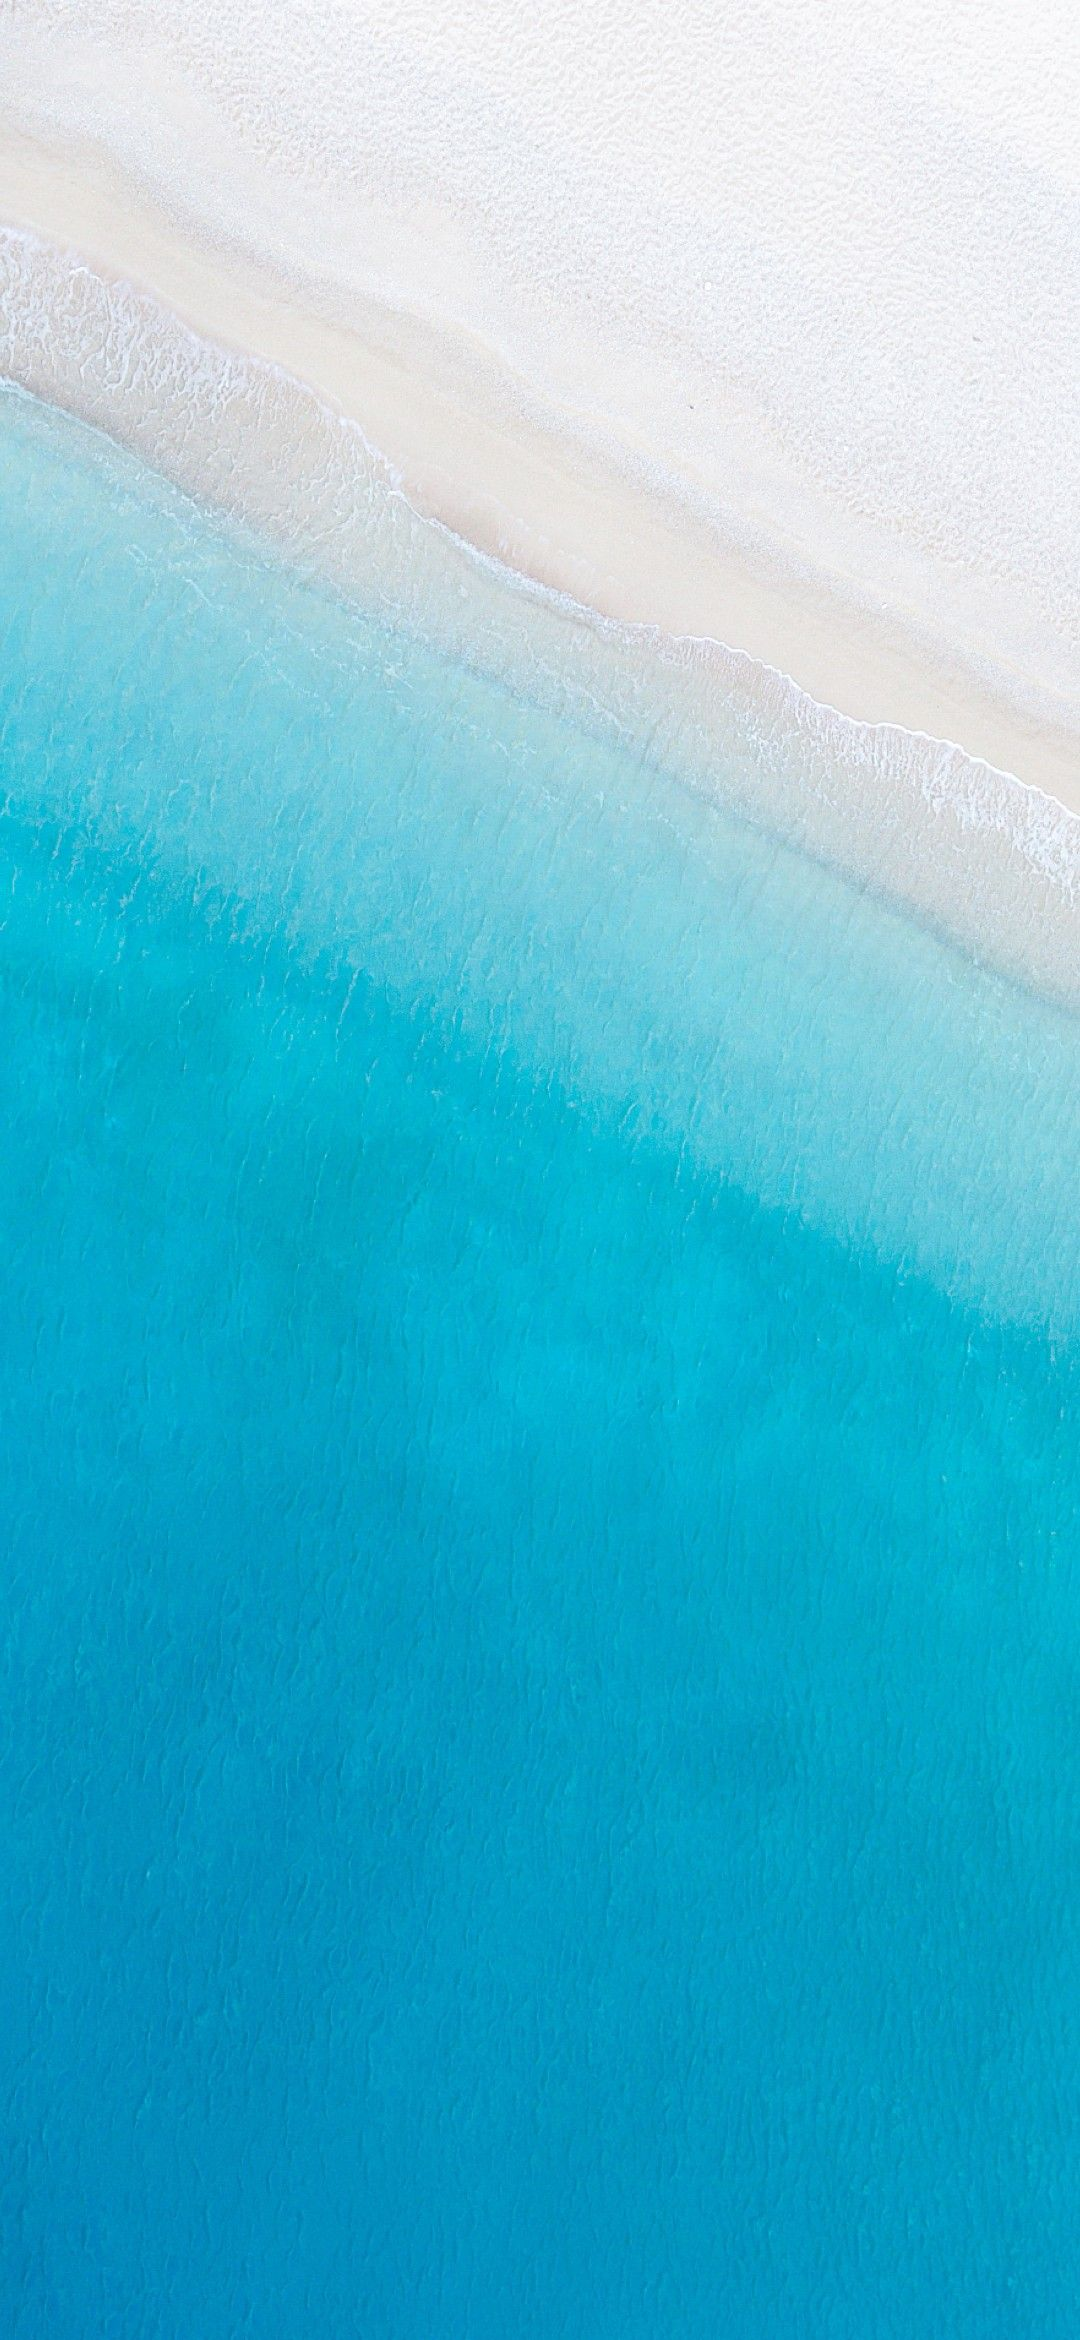 Oppo Find X Drones Photography Pinterest Iphone Wallpaper